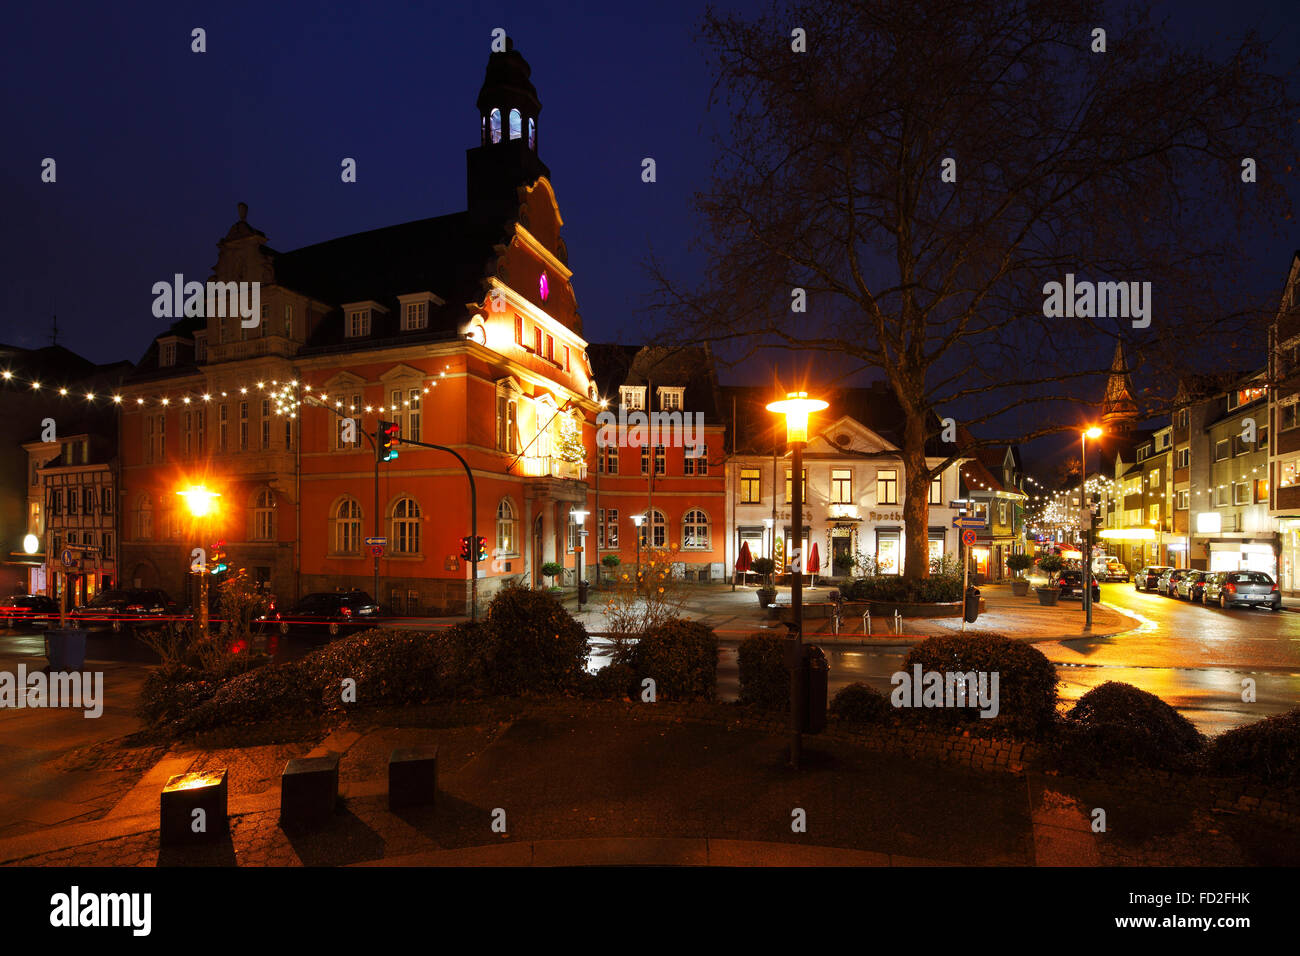 abendaufnahme und weihnachtsbeleuchtung rathaus und buergerhaeuser bin werdener markt in essen. Black Bedroom Furniture Sets. Home Design Ideas